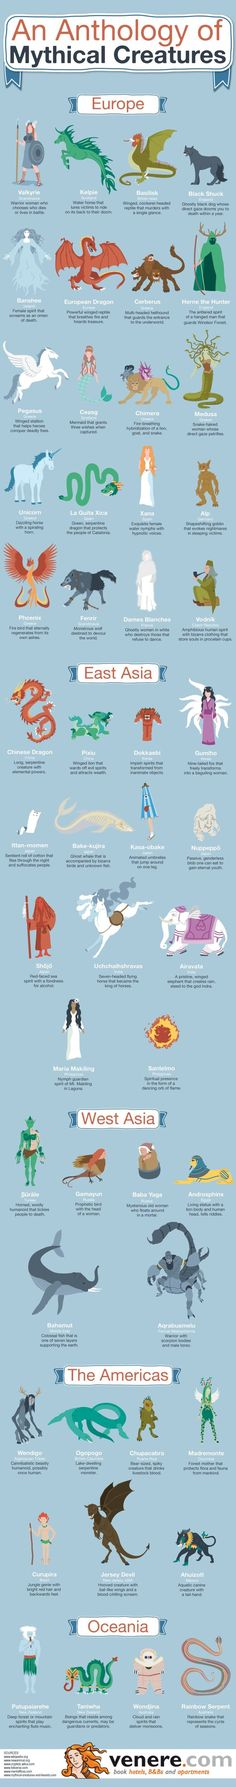 Mythology + Religion: An Anthology of Mythological Creatures Infographic Mythological Creatures, Fantasy Creatures, Mythological Monsters, Mythical Creatures List, Magical Creatures, Japanese Mythical Creatures, Creative Writing, Writing Tips, Writing Help